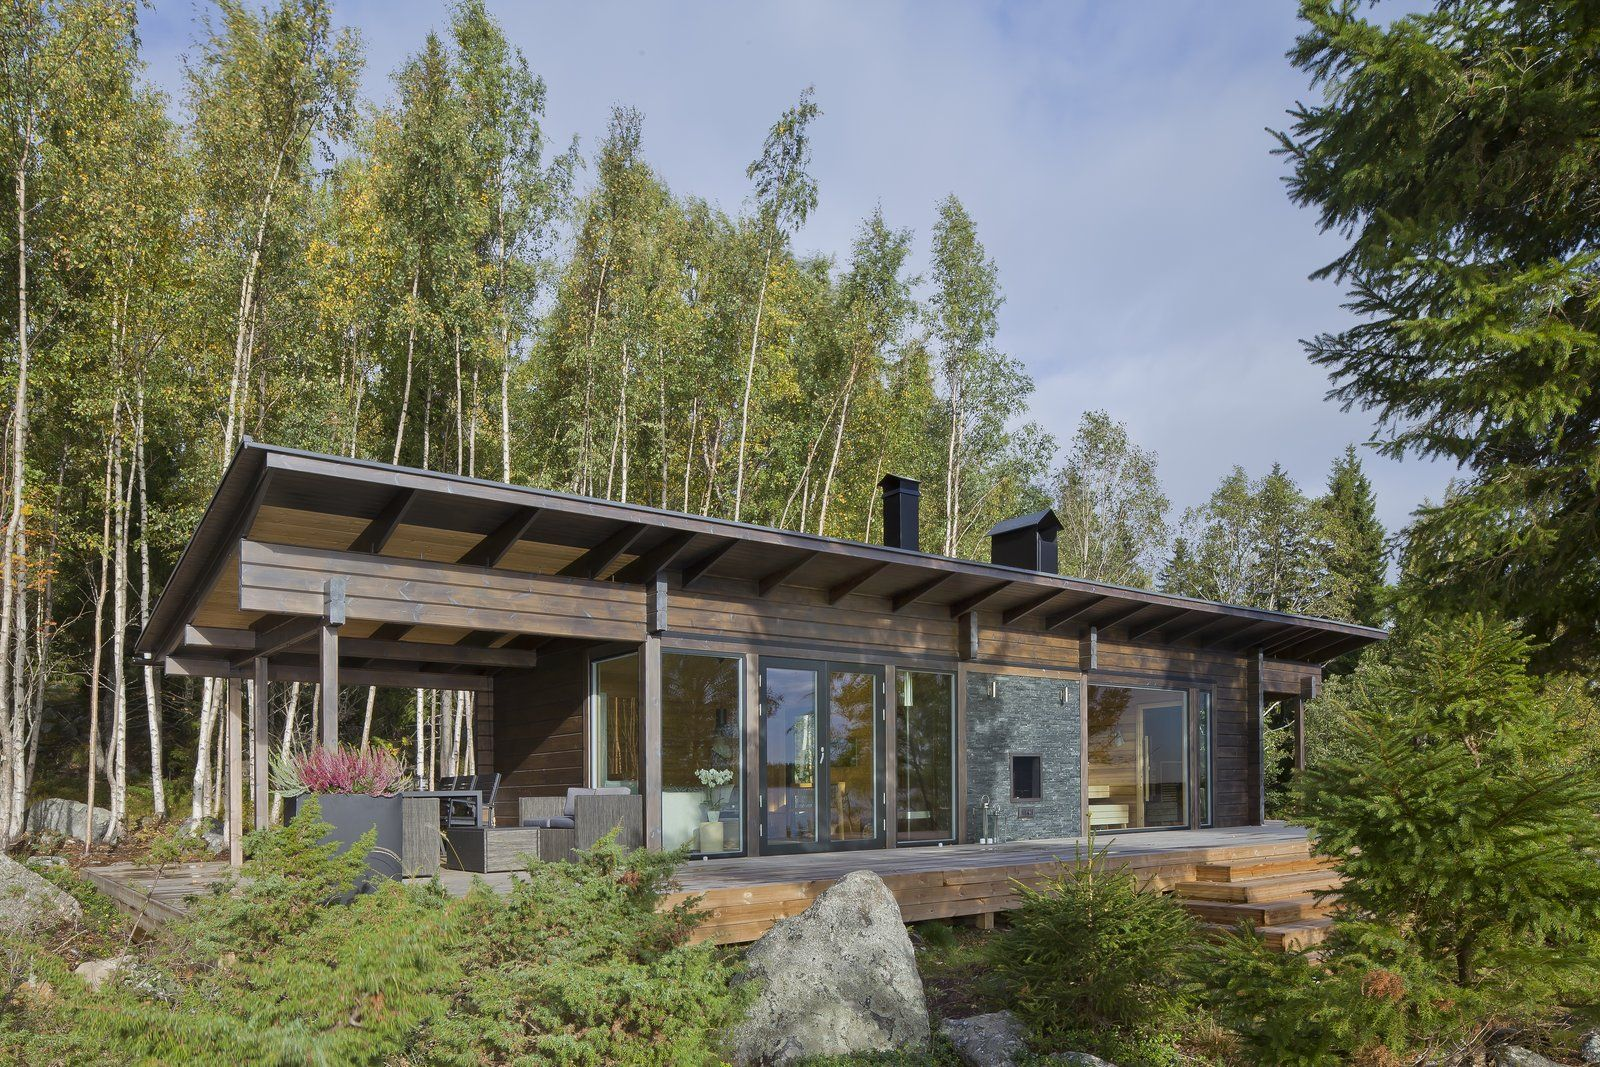 Modern Log Cabin Home Kits By Honka Prefab Log Cabin Kits In Finland Cabin Kit Homes Log Cabin Kits Small Log Cabin